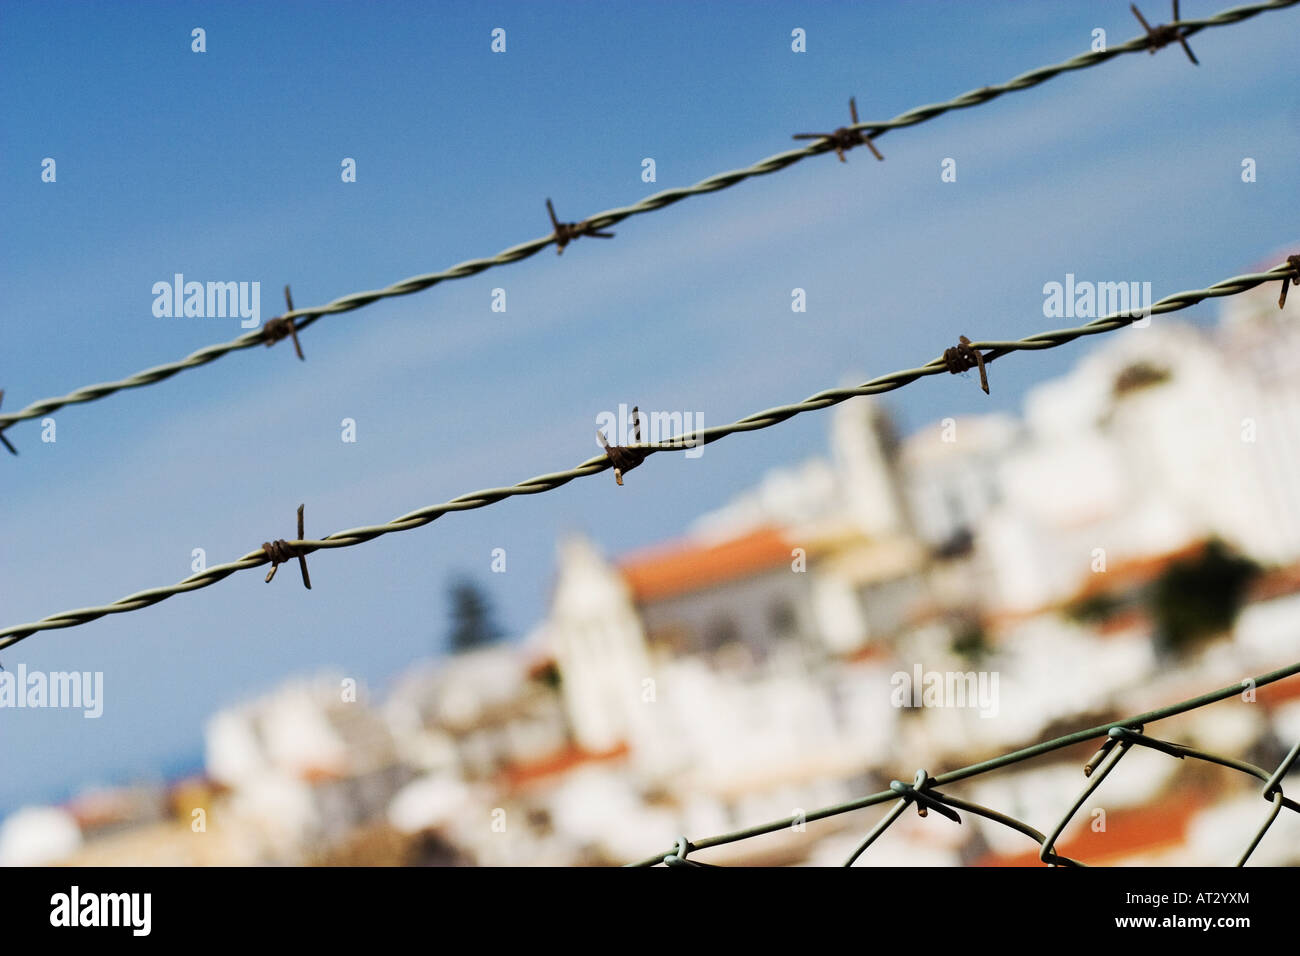 A Barbed Wire fence looking over the white houses in the algarve ...